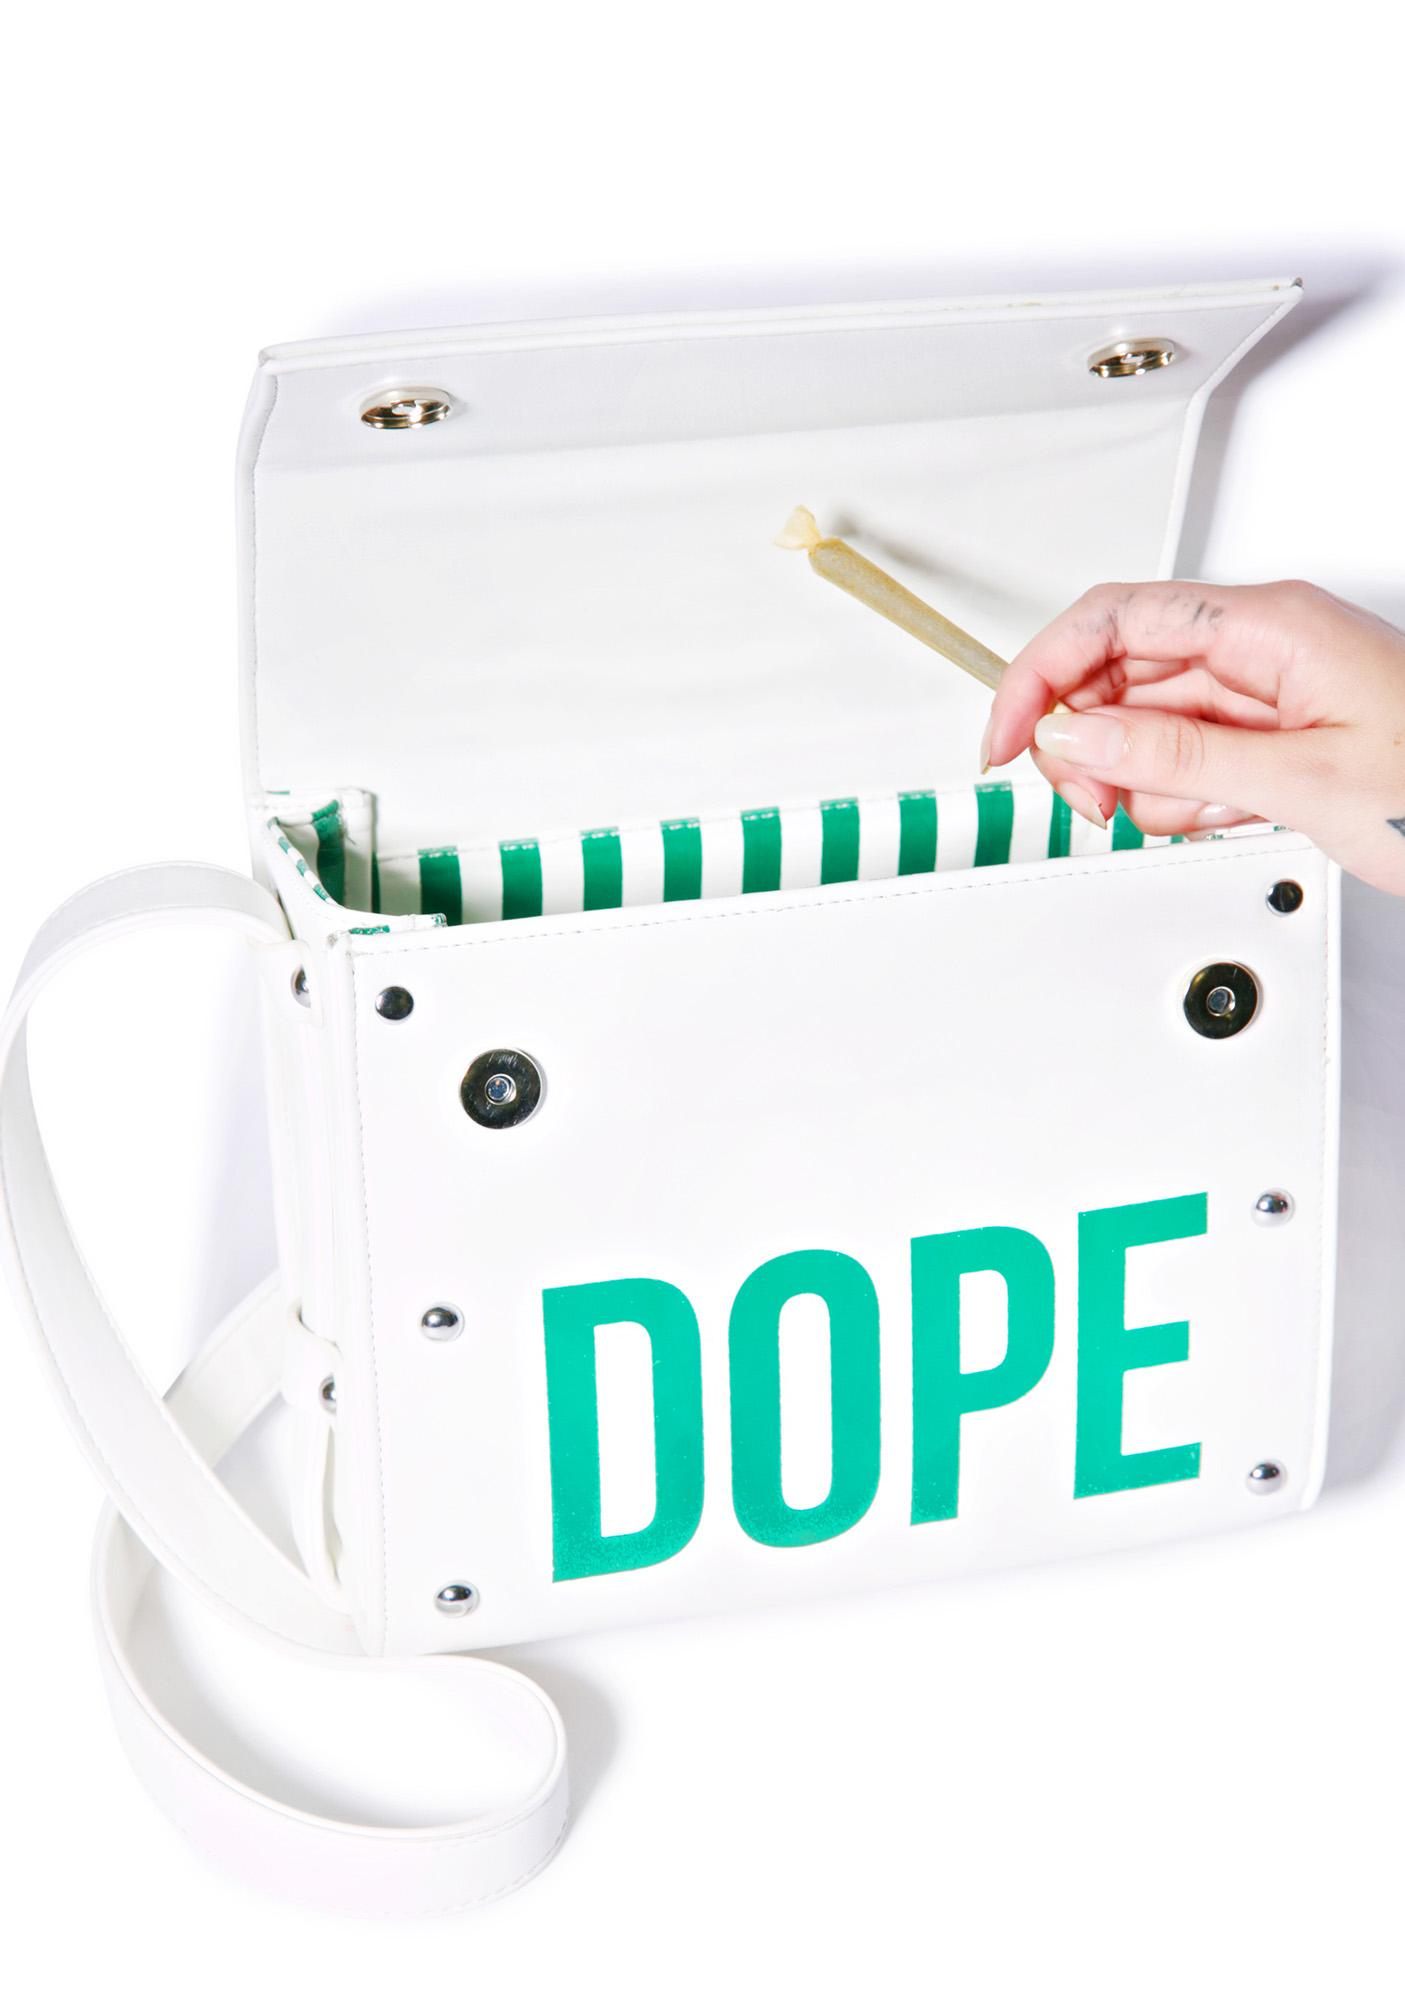 The Dope Bag